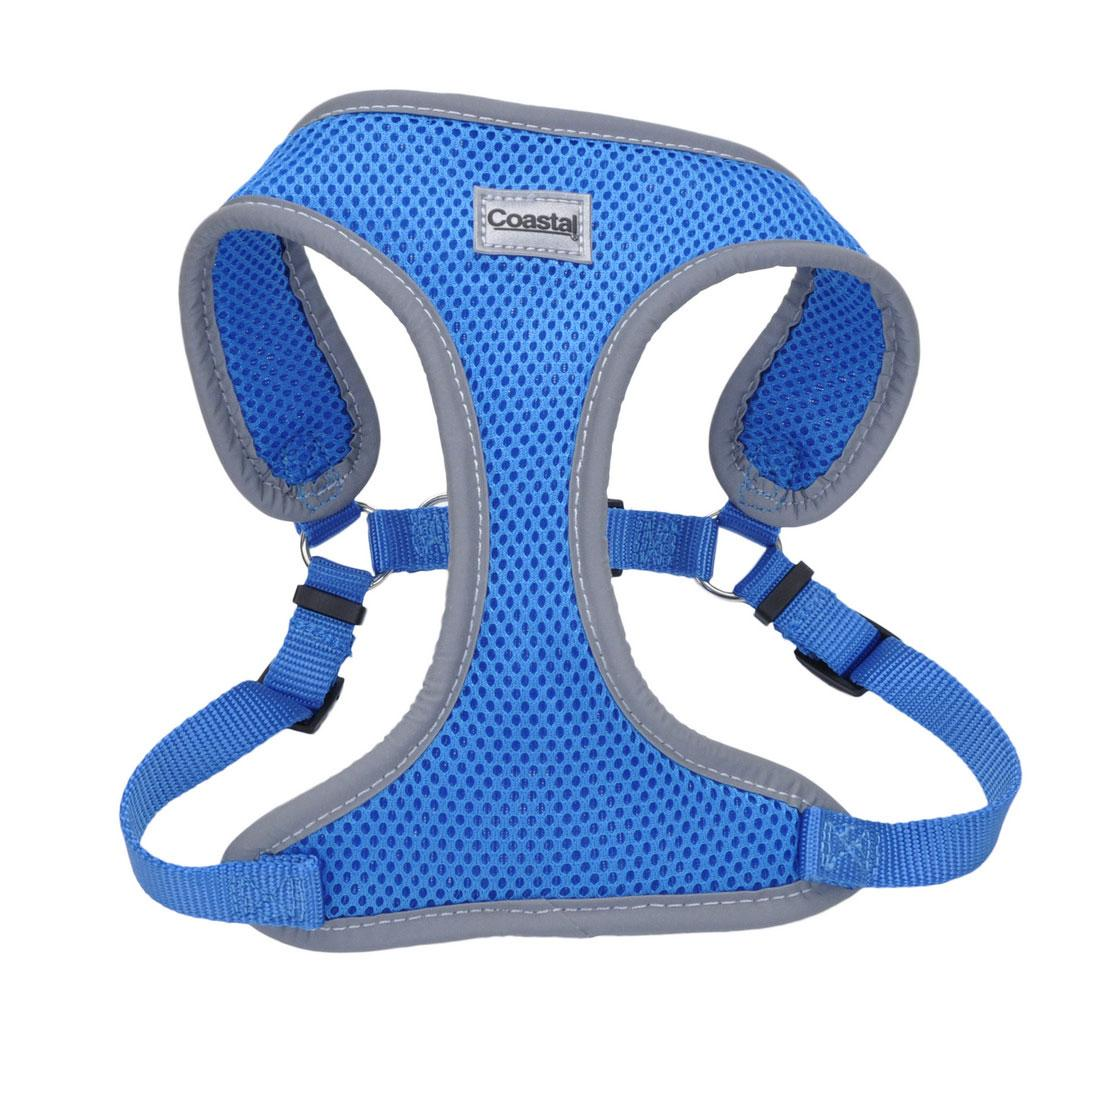 Coastal Comfort Soft Reflective Wrap Adjustable Dog Harness, Blue Lagoon, 5/8-in x 19-23-in